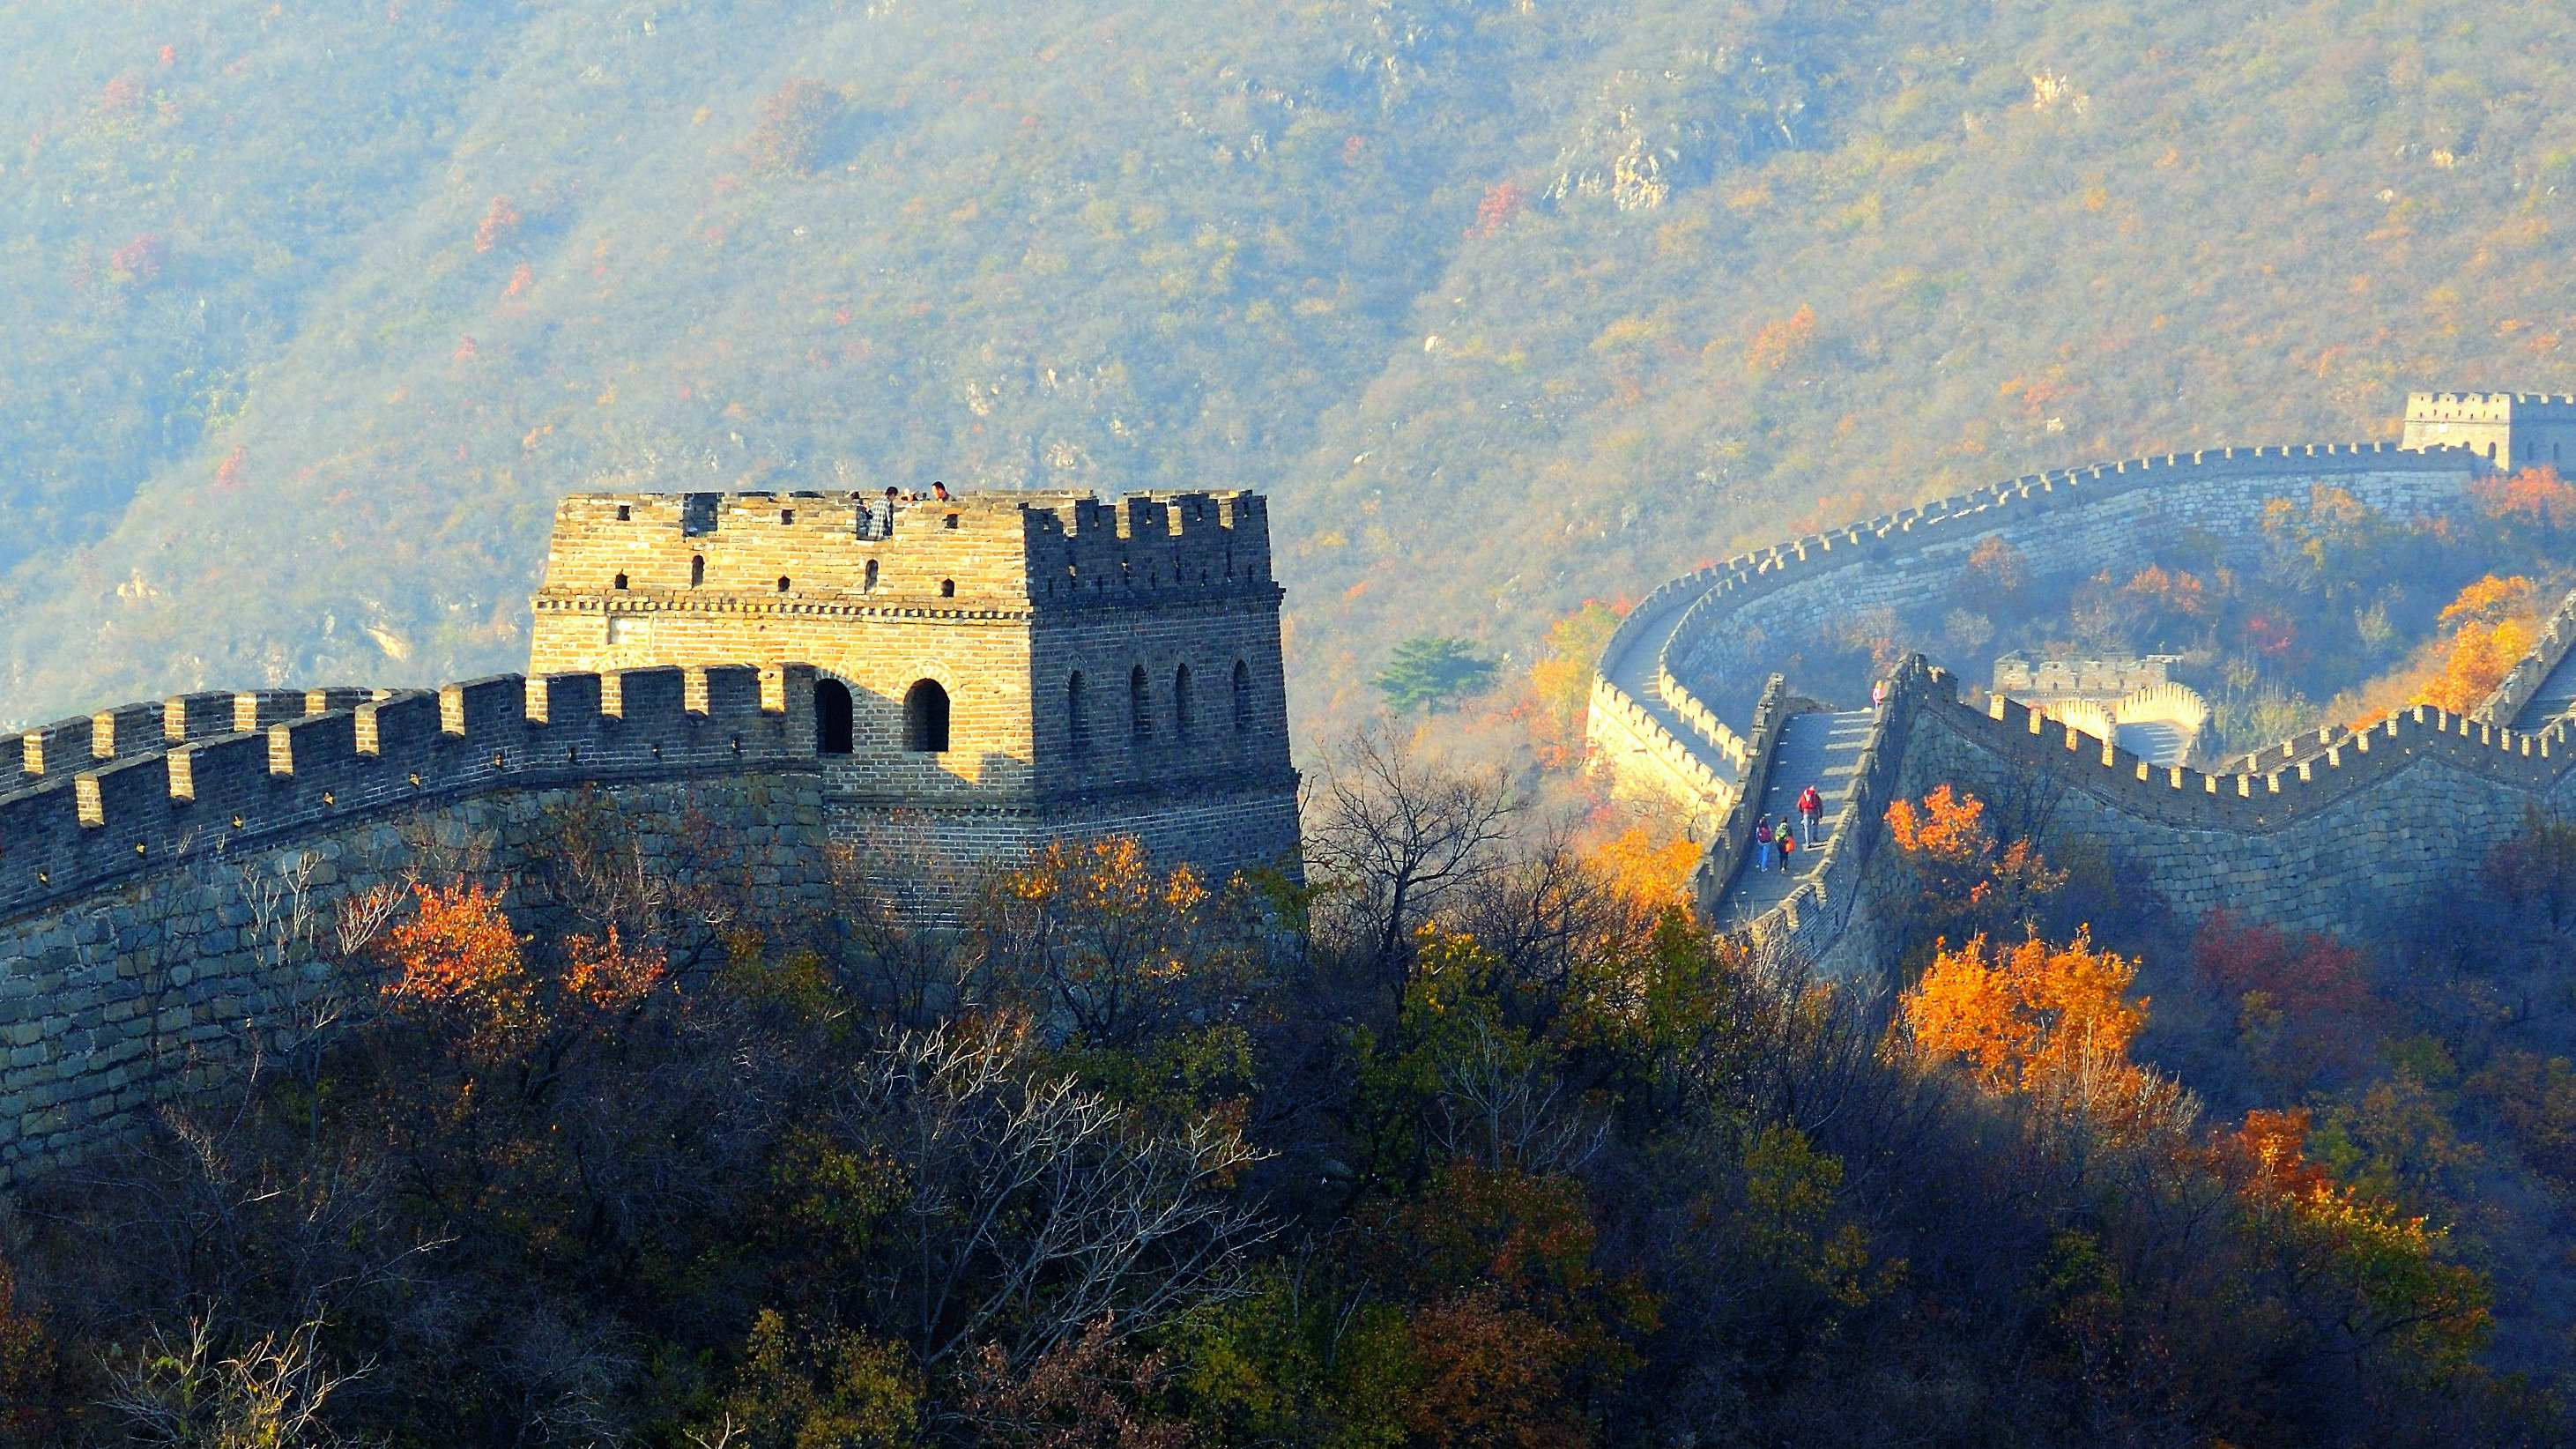 Mutianyu Great Wall - the most beautiful section of China Great Wall